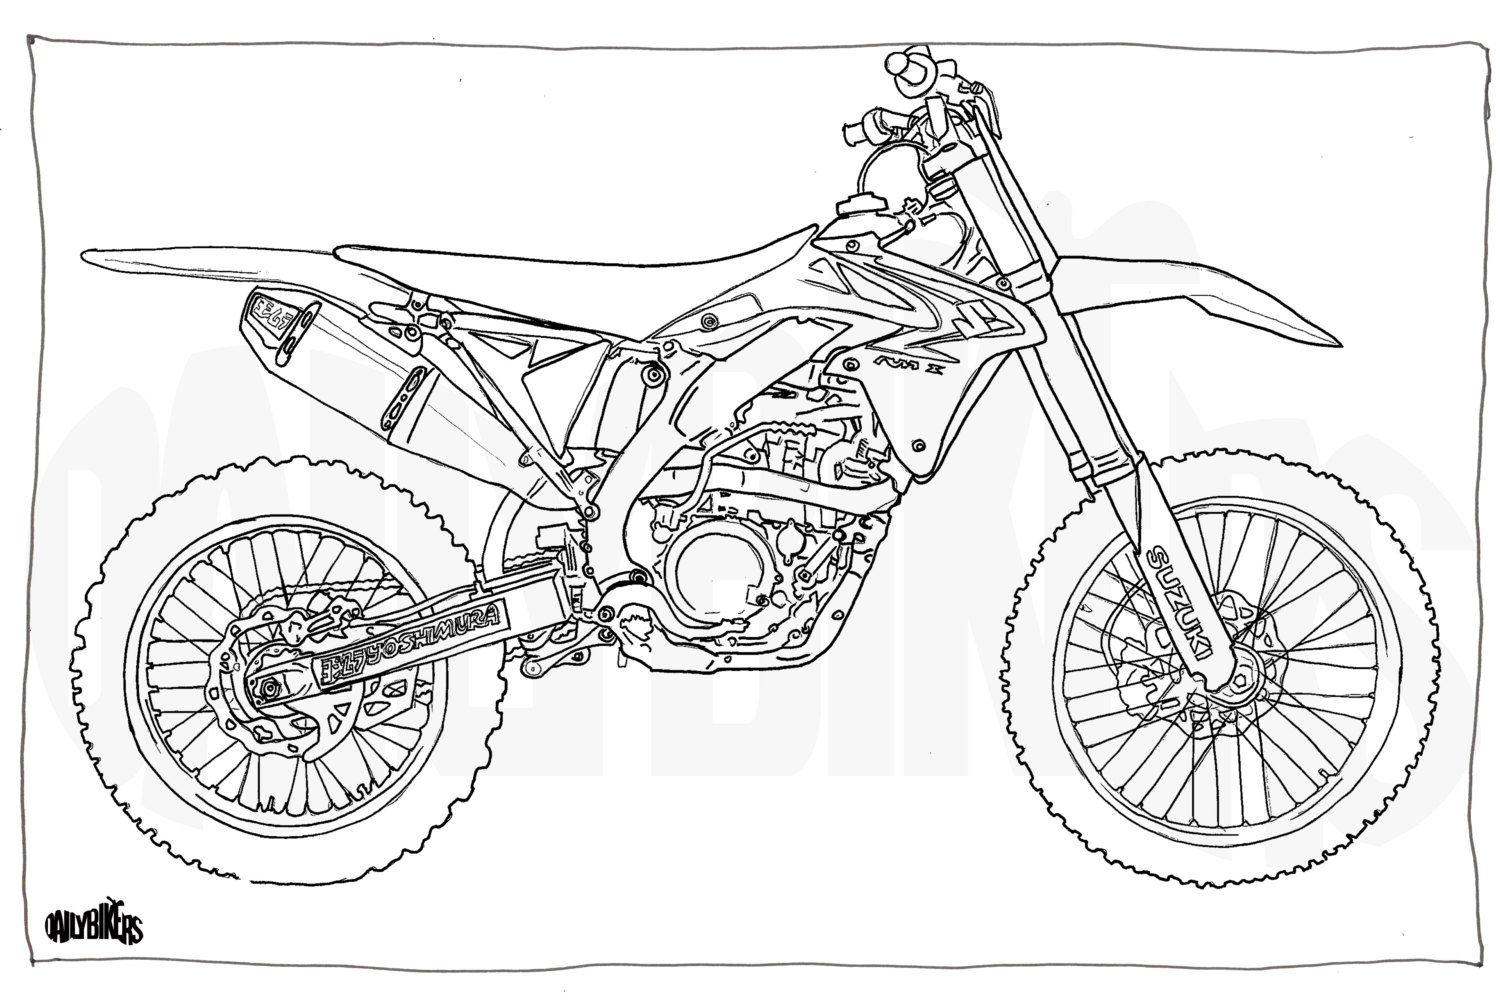 Disegni Motocross: Motorcycle Illustration